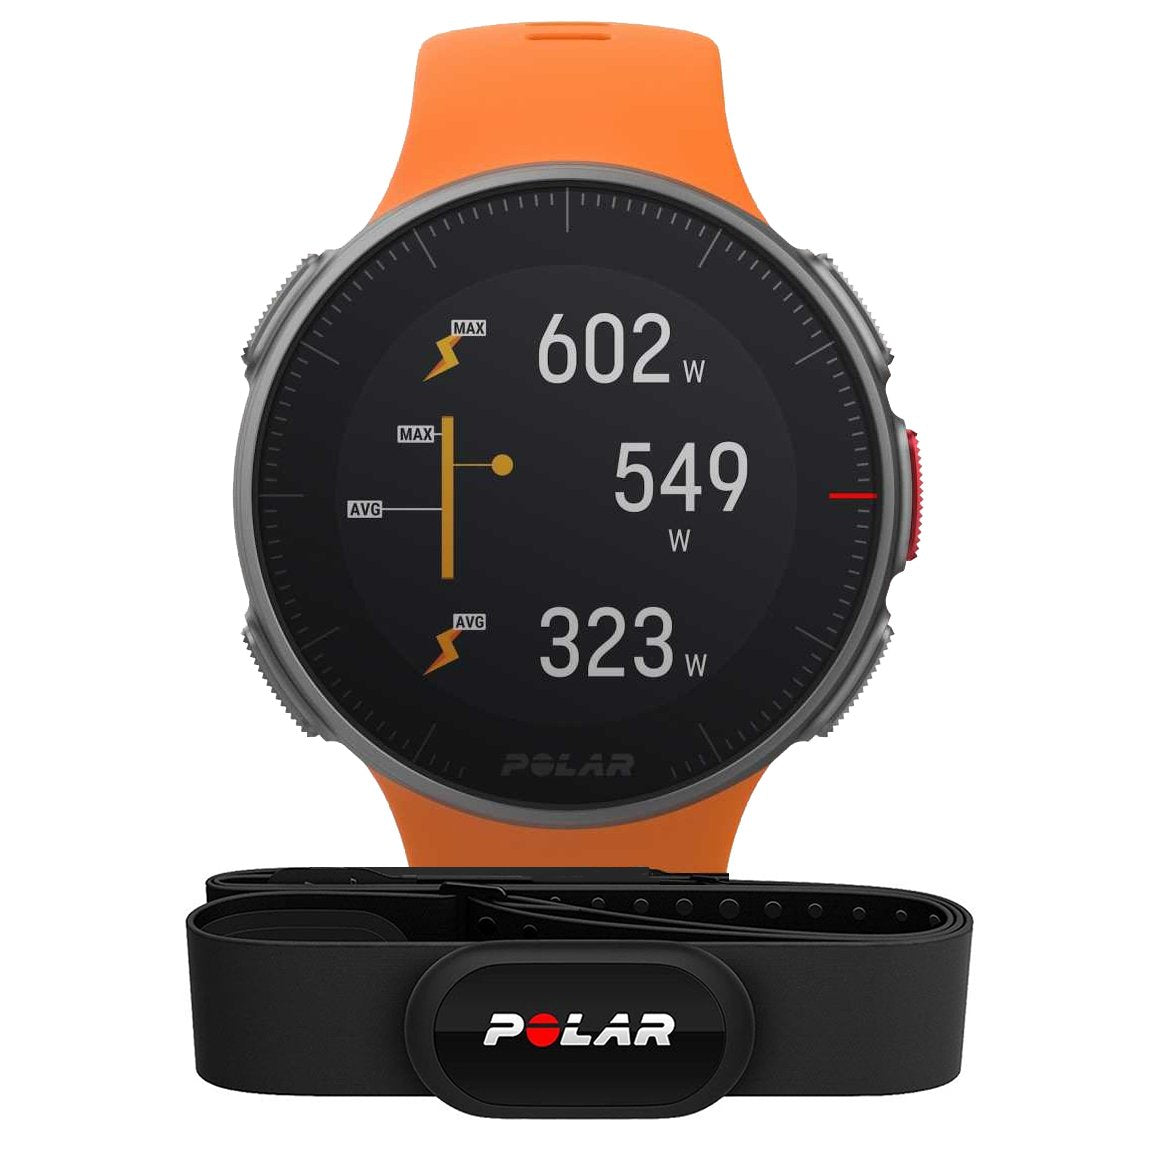 Polar Smart Watch Vantage V (With Heart Rate Strap) Orange Premium GPS Multi Sport & Triathlon Training 90069666